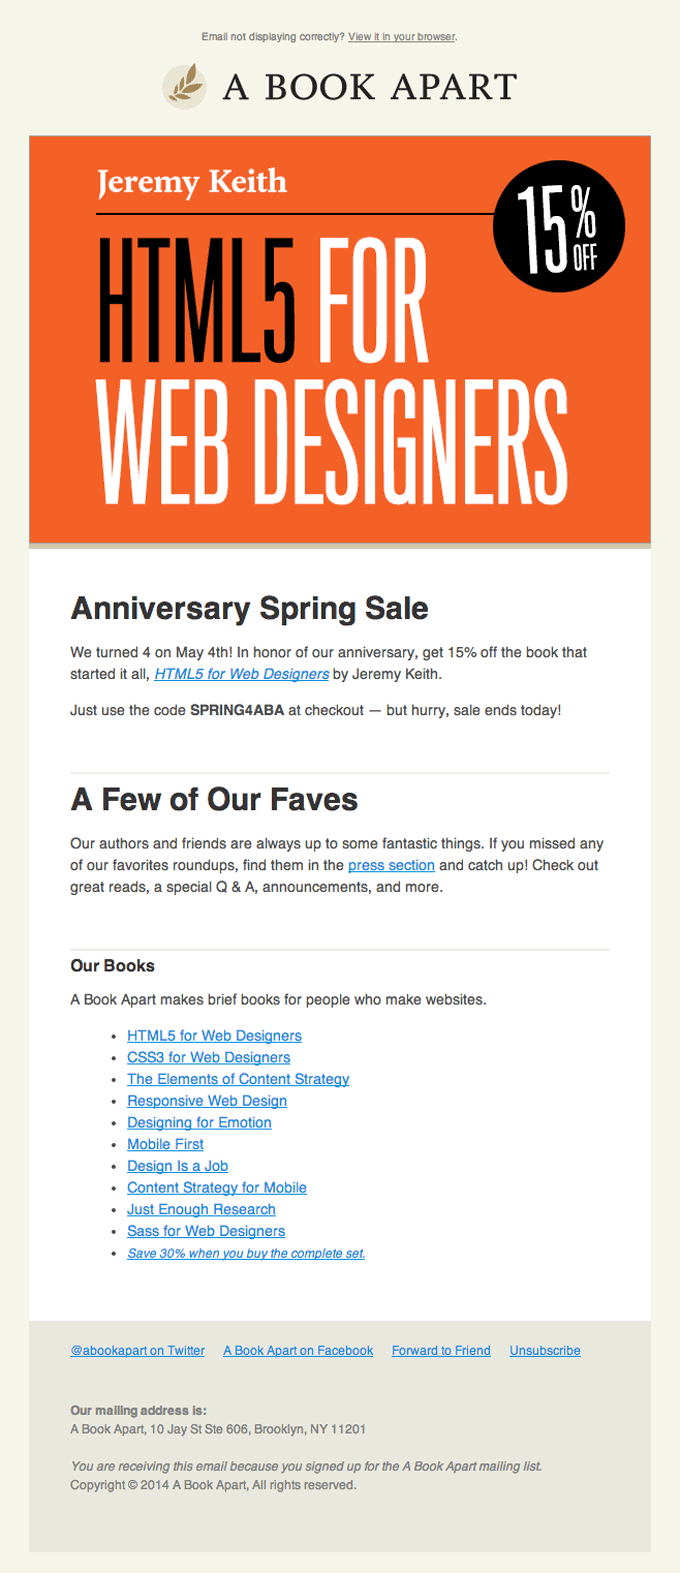 Product Sale Email Design from A Book Apart